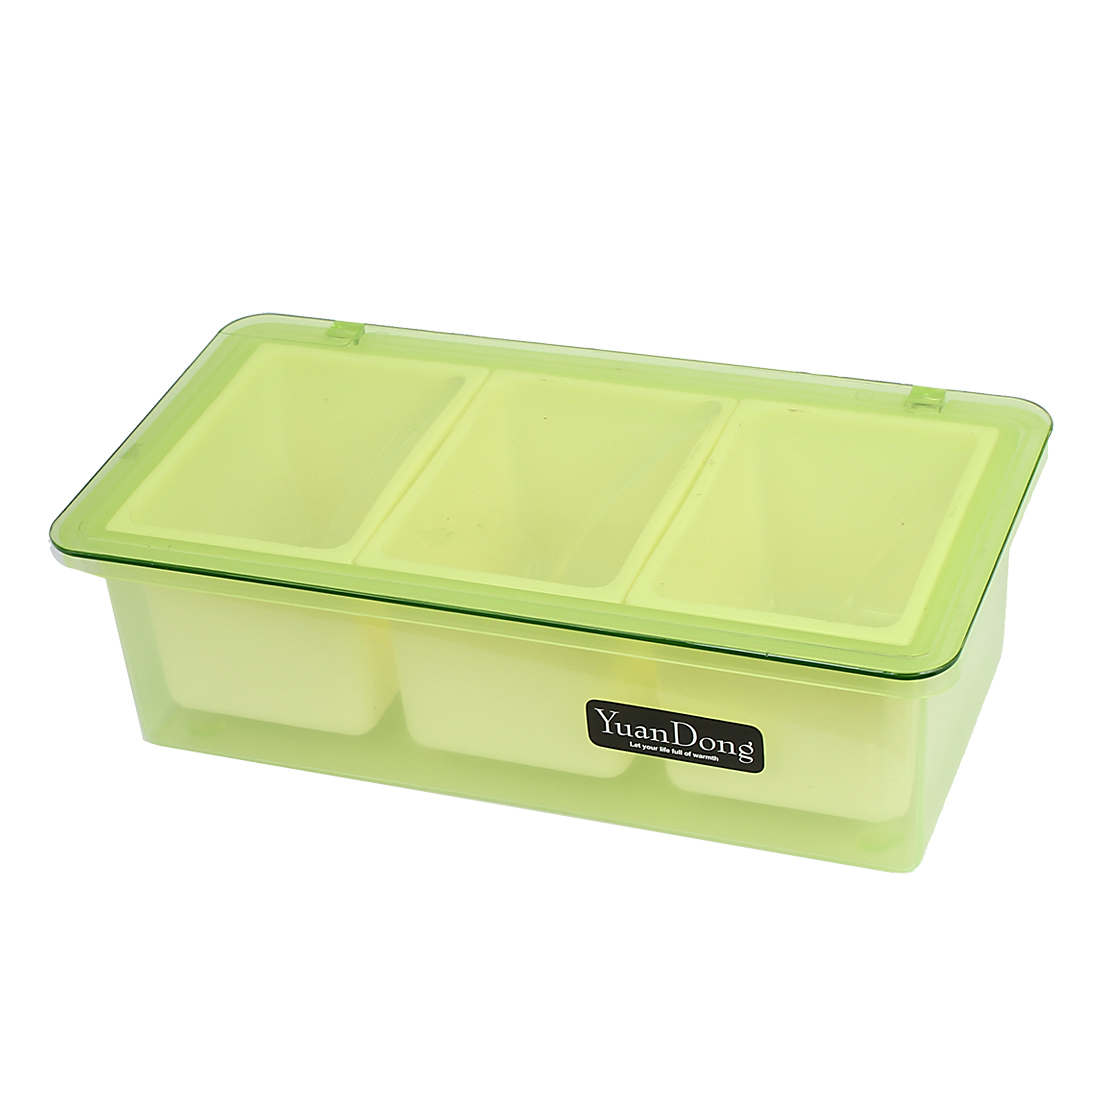 Plastic Rectangle 3 Compartments Condiment Holder Dispenser Tray Green Off White